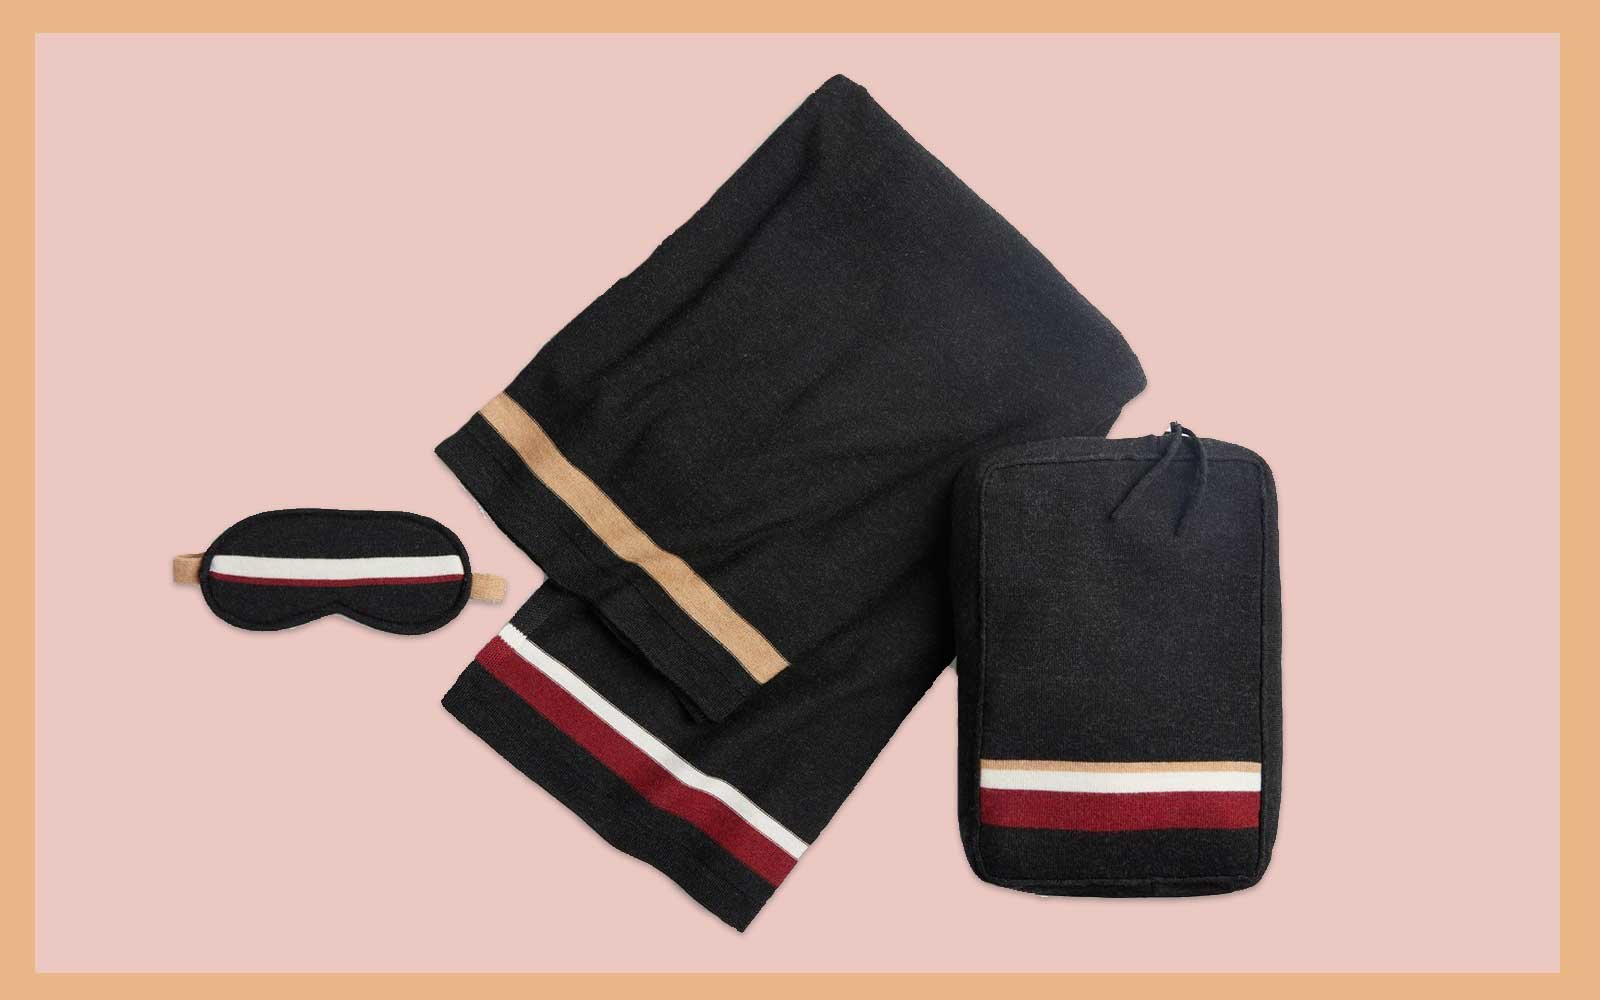 Black, Red, and Gold Merino Wool Travel Blanket and Eye Mask